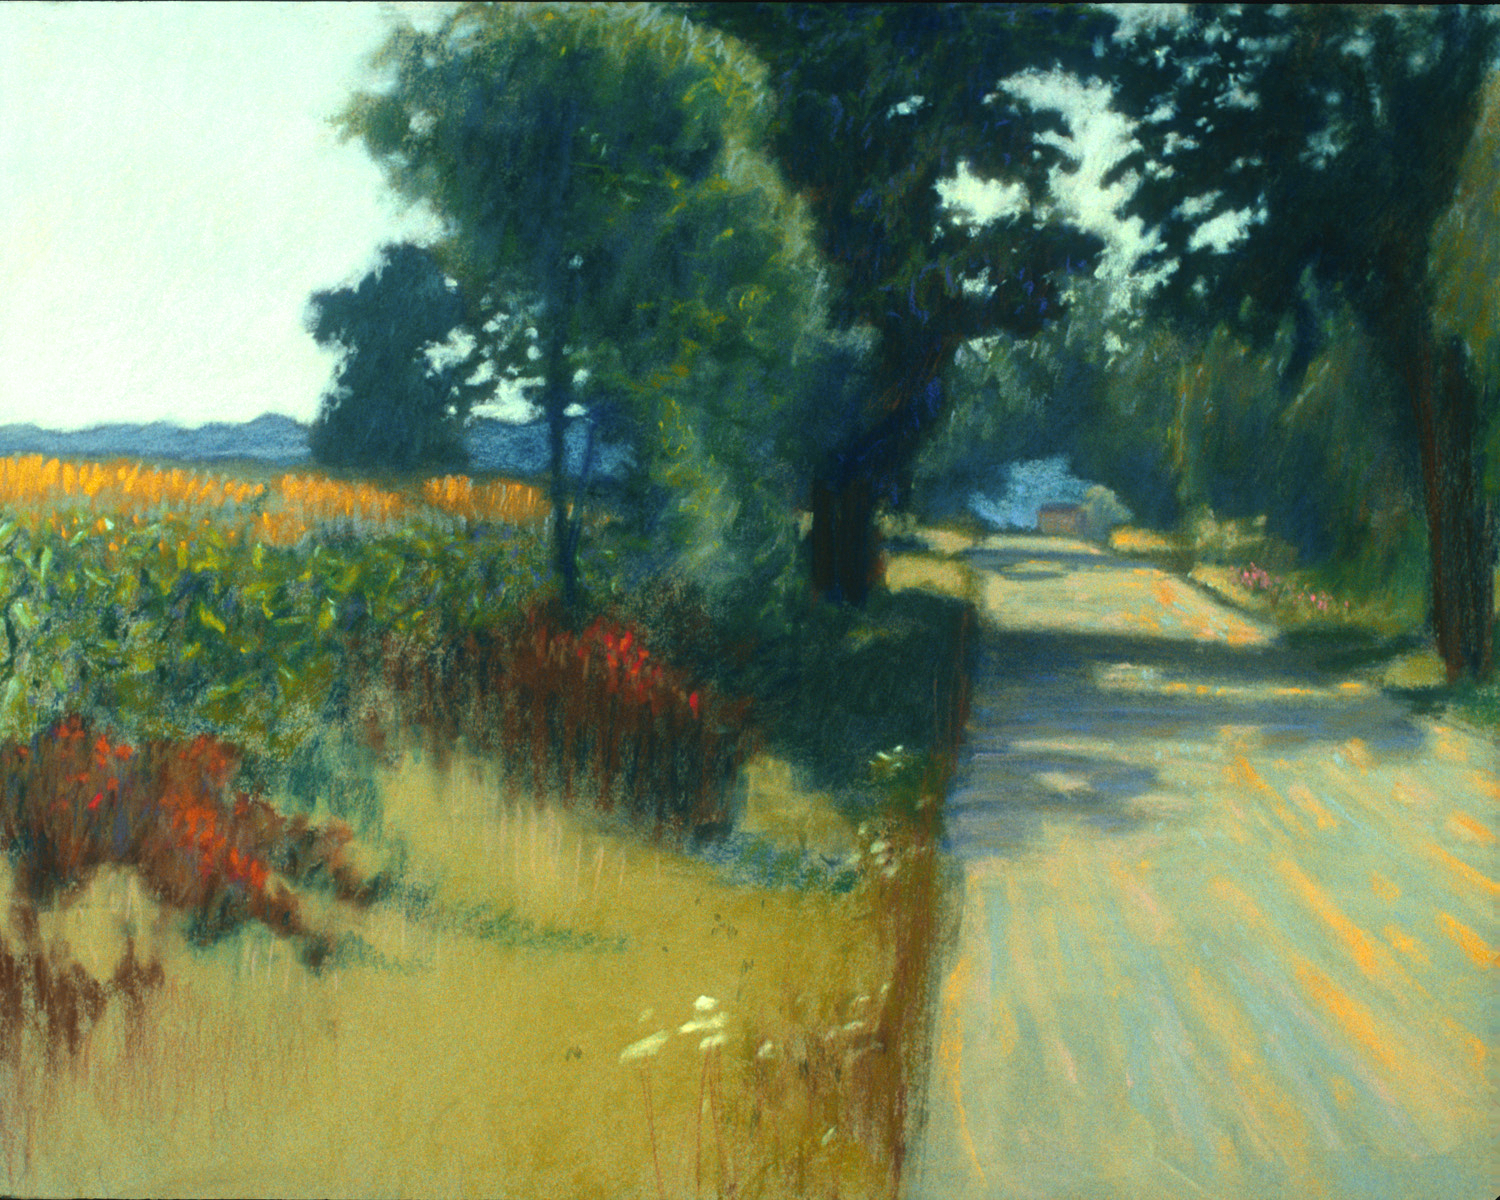 Road Along Cornfield